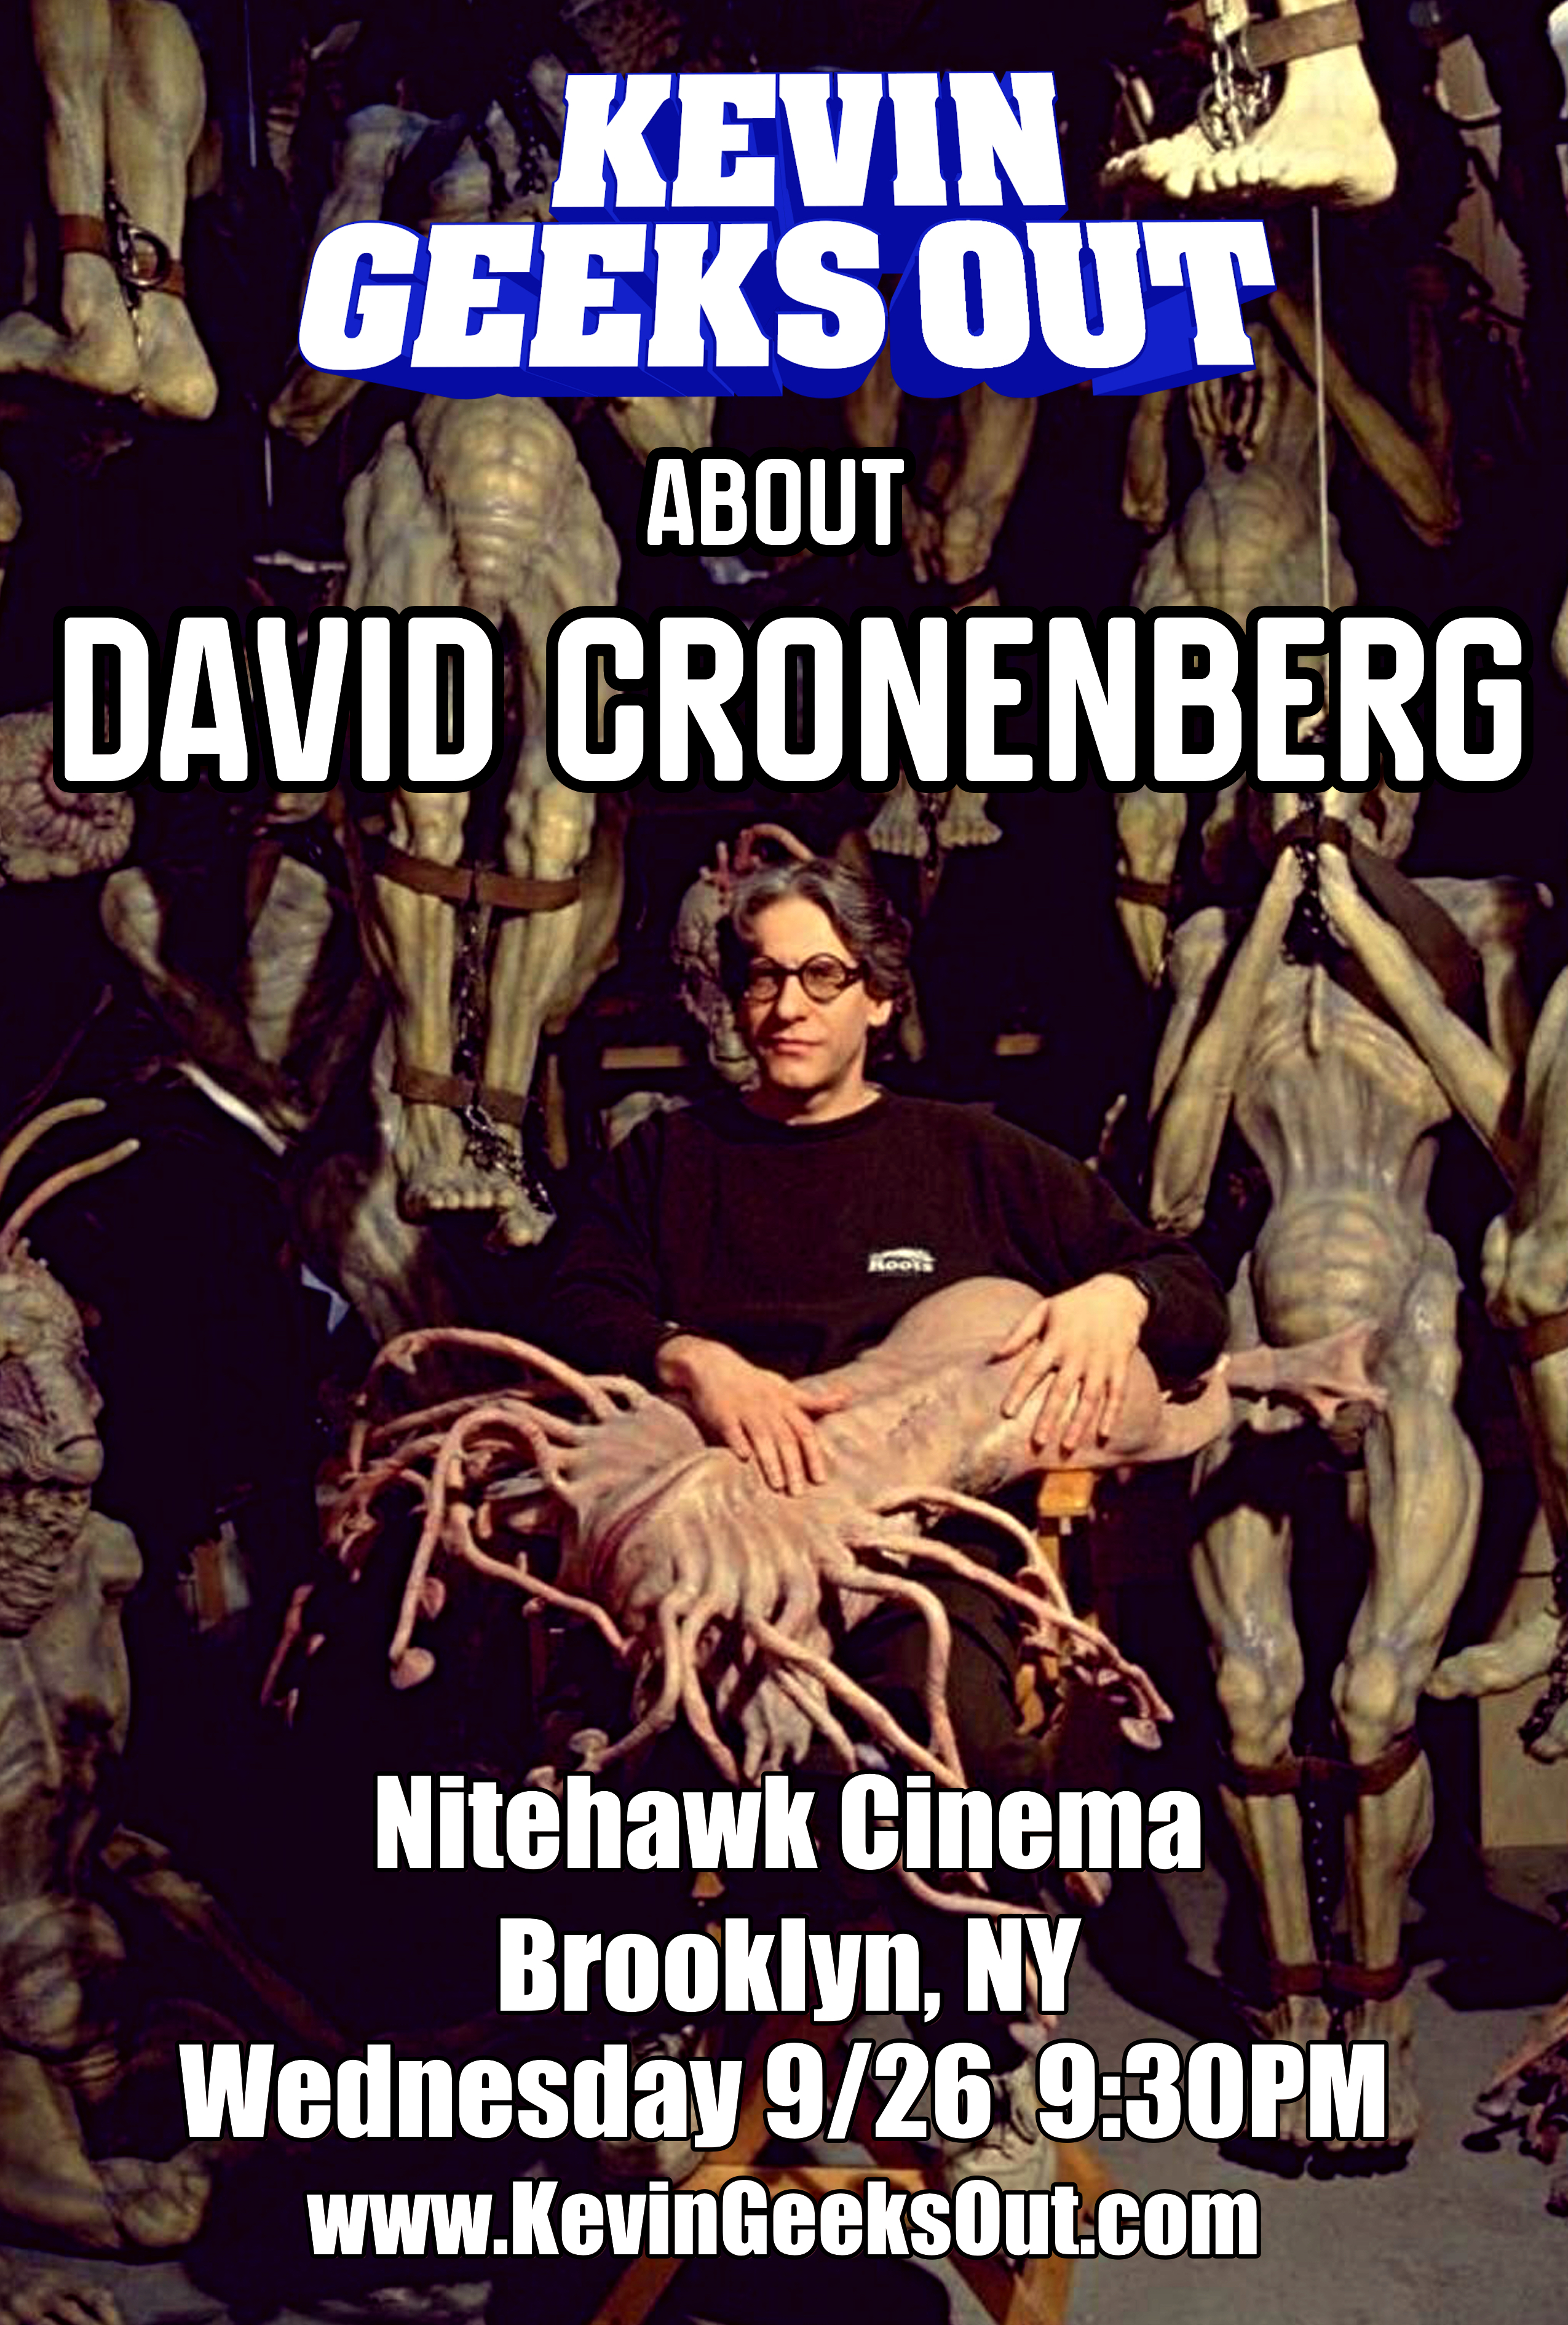 Poster for Kevin Geeks Out About David Cronenberg